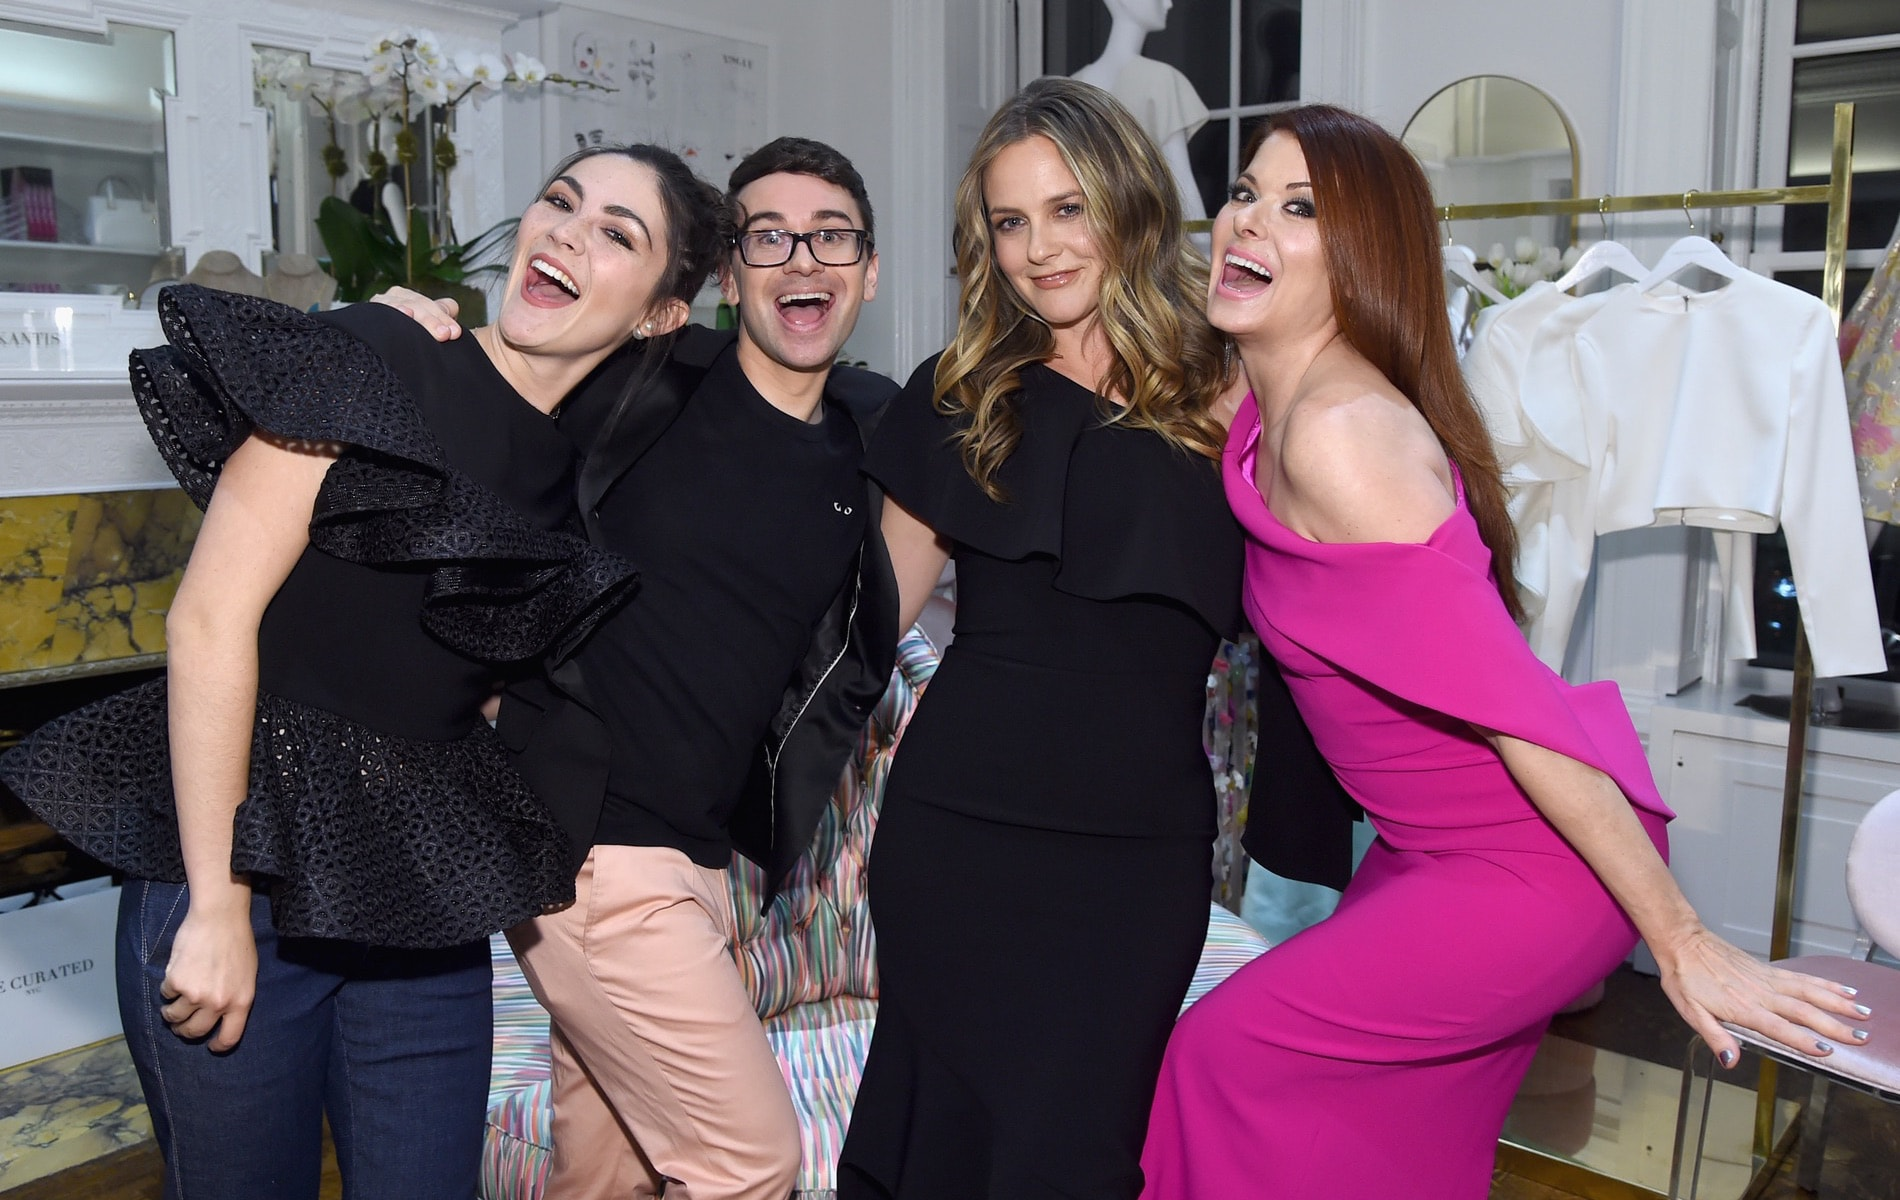 Isabelle Fuhrman, Christian Siriano, Alicia Silverstone and Debra Messing attend the opening of Christian Siriano's new store, The Curated NYC, hosted by Alicia Silverstone and sponsored by VIE Magazine on April 17, 2018, in New York City.